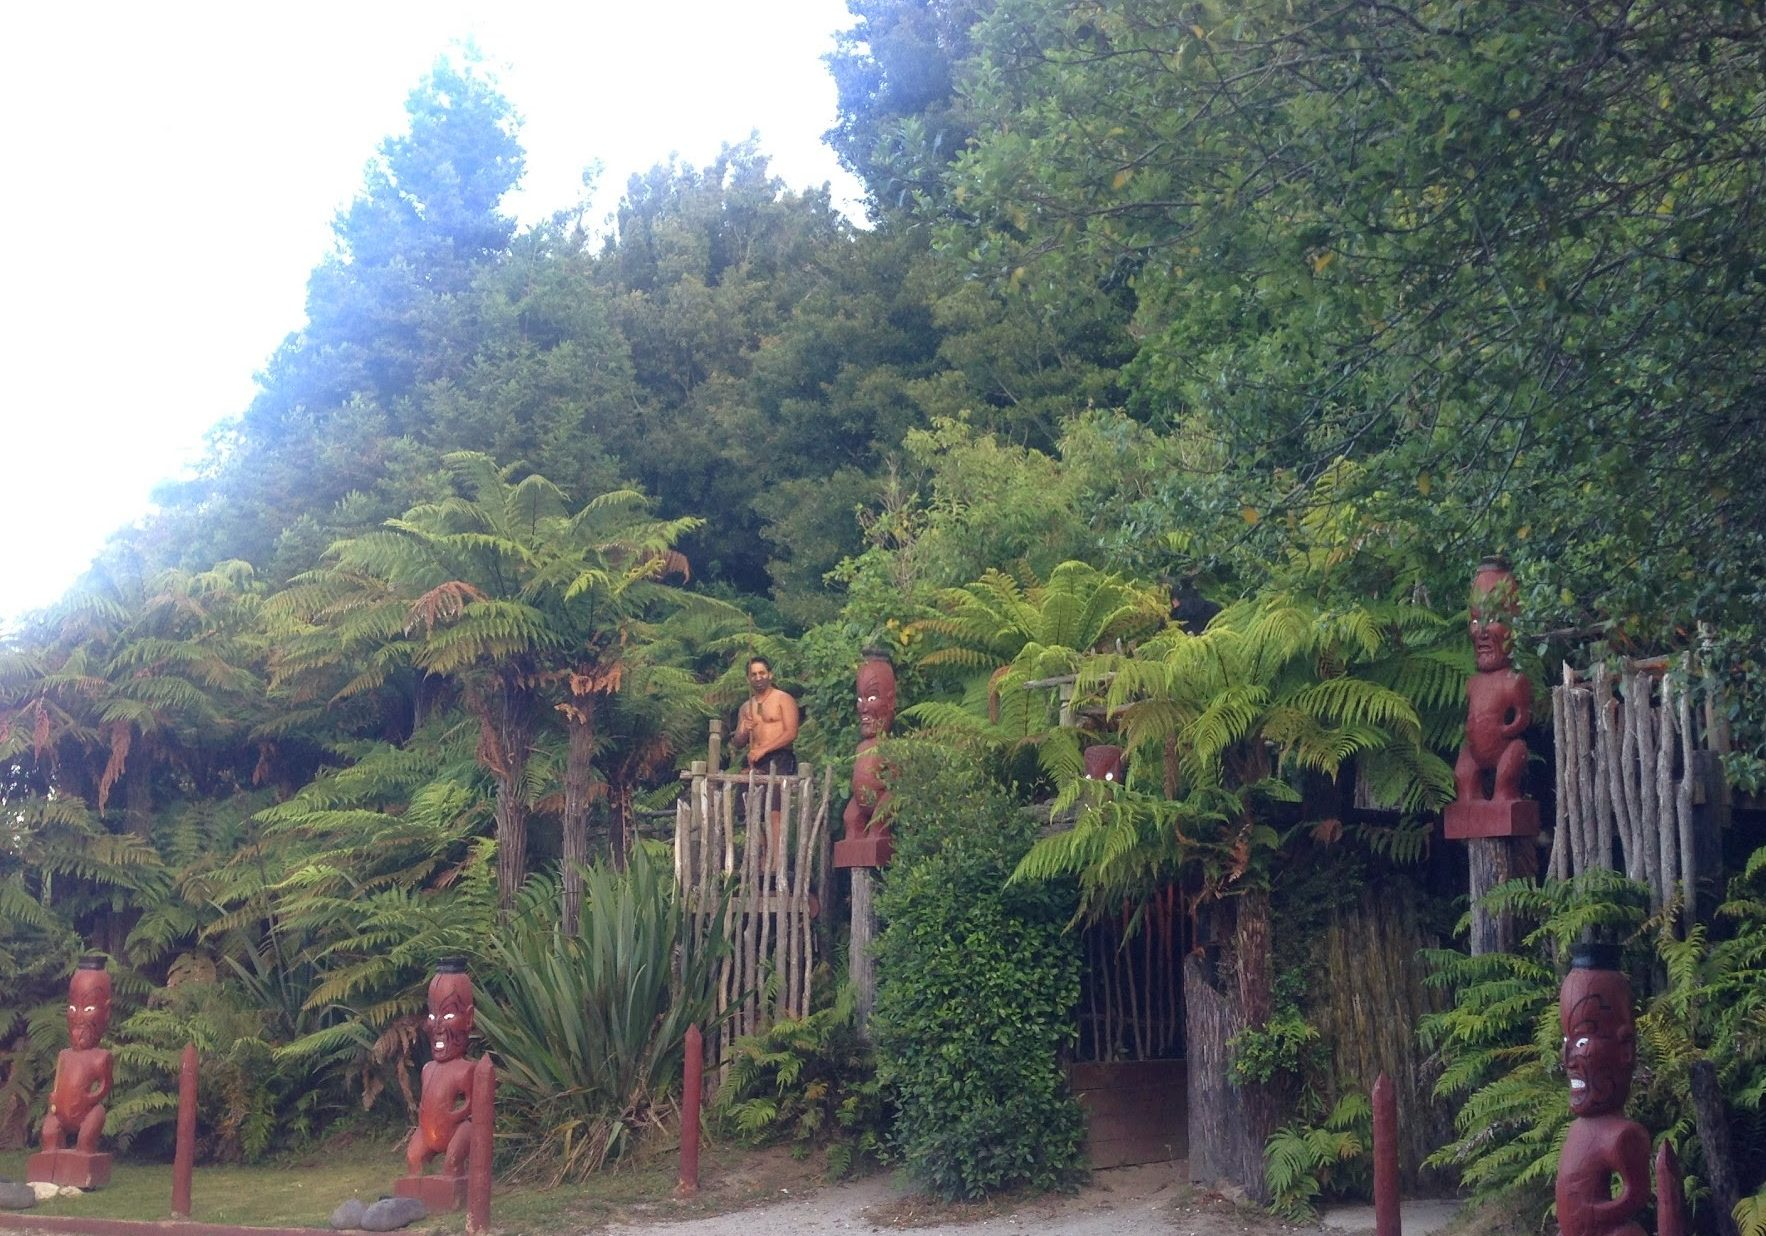 Maori, maori village, Maori culture, maori experience, New Zealand, north island. things to do,